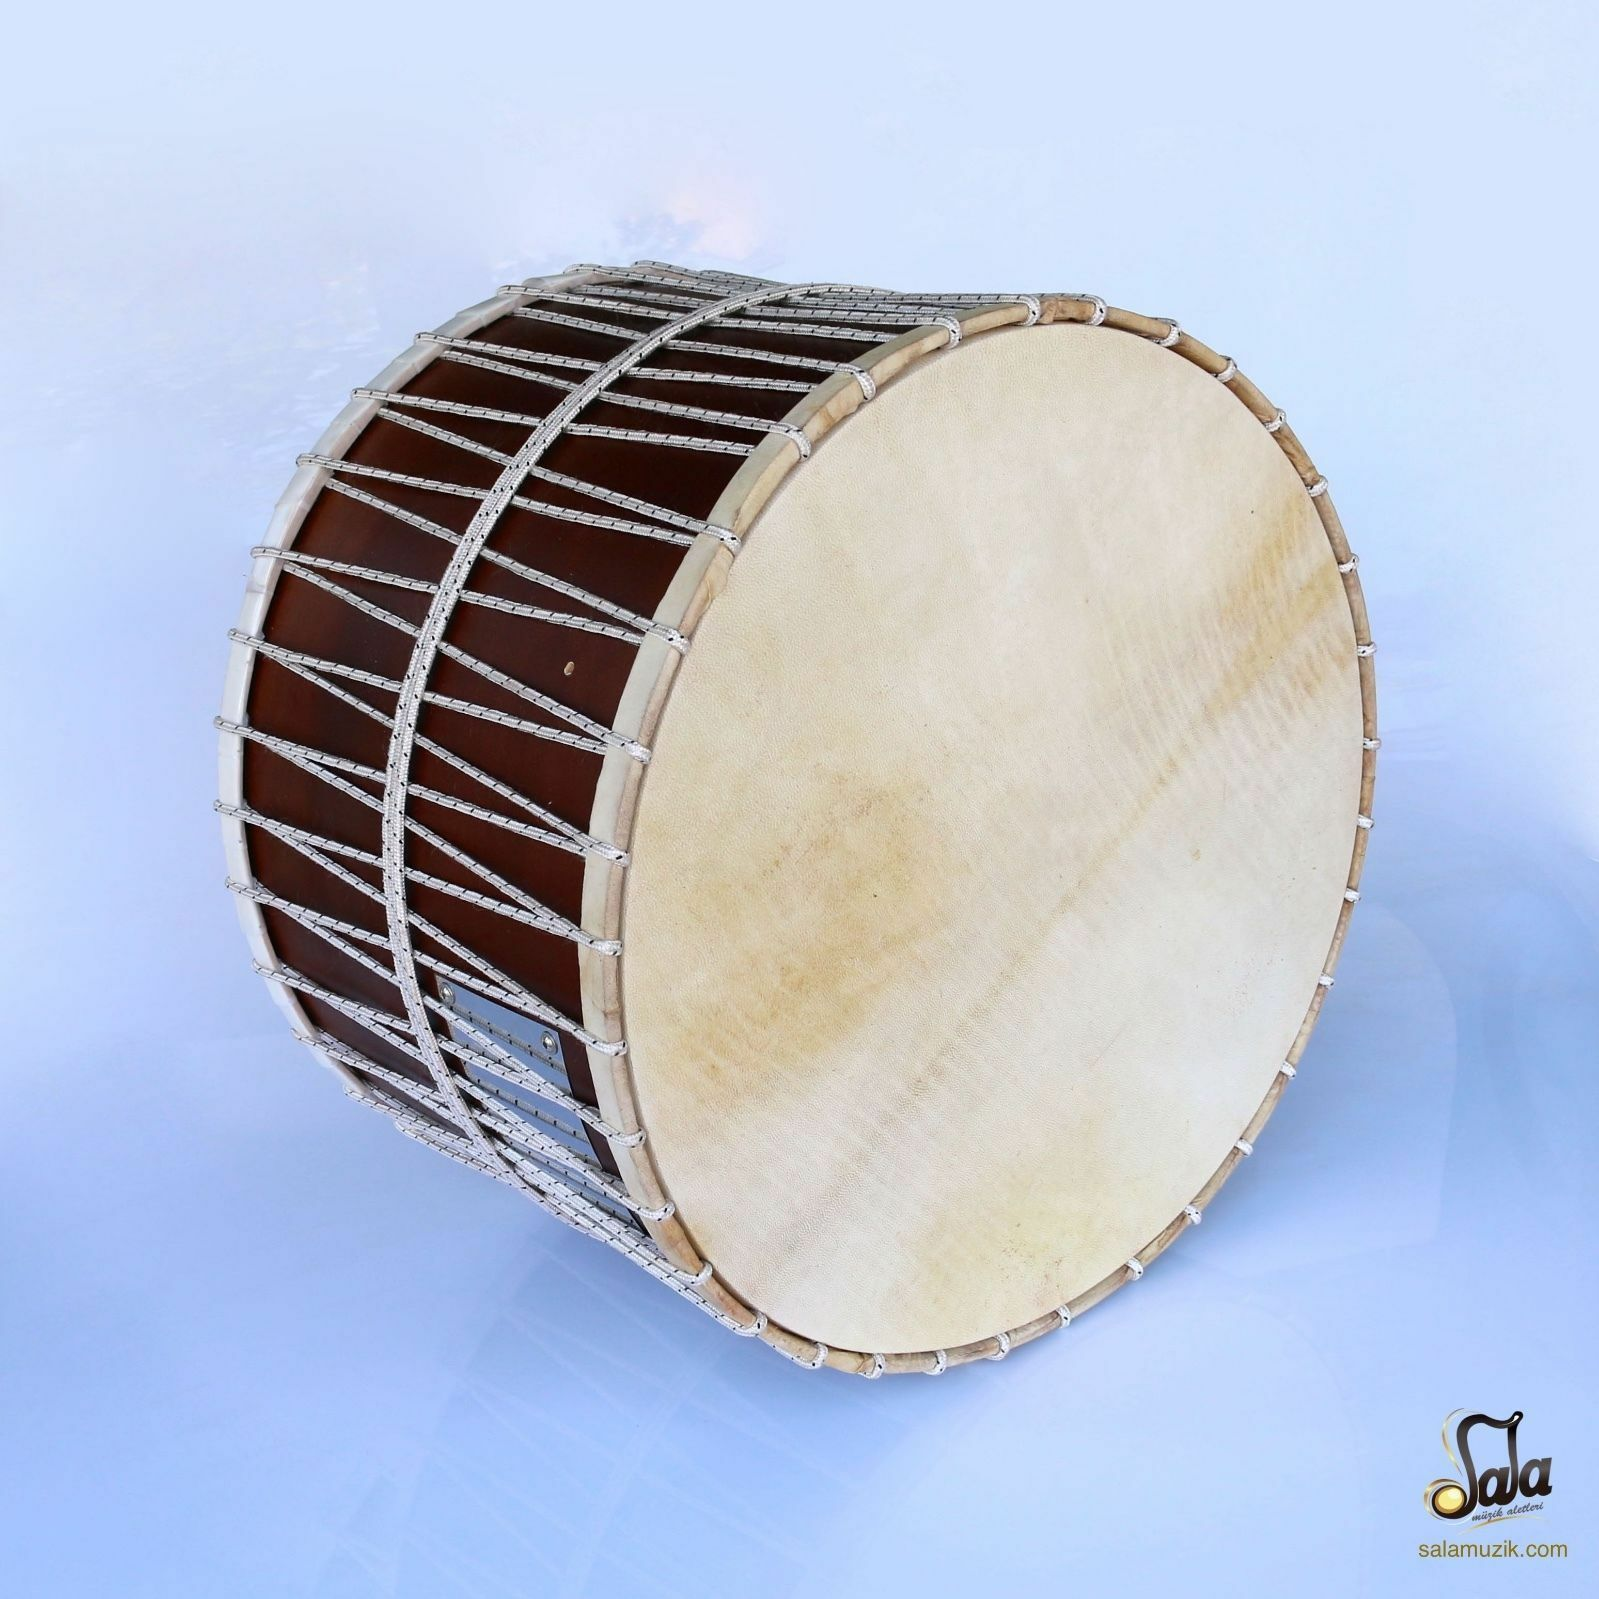 Turkish High Quality Davul Percussion Walnut Drum ED-102